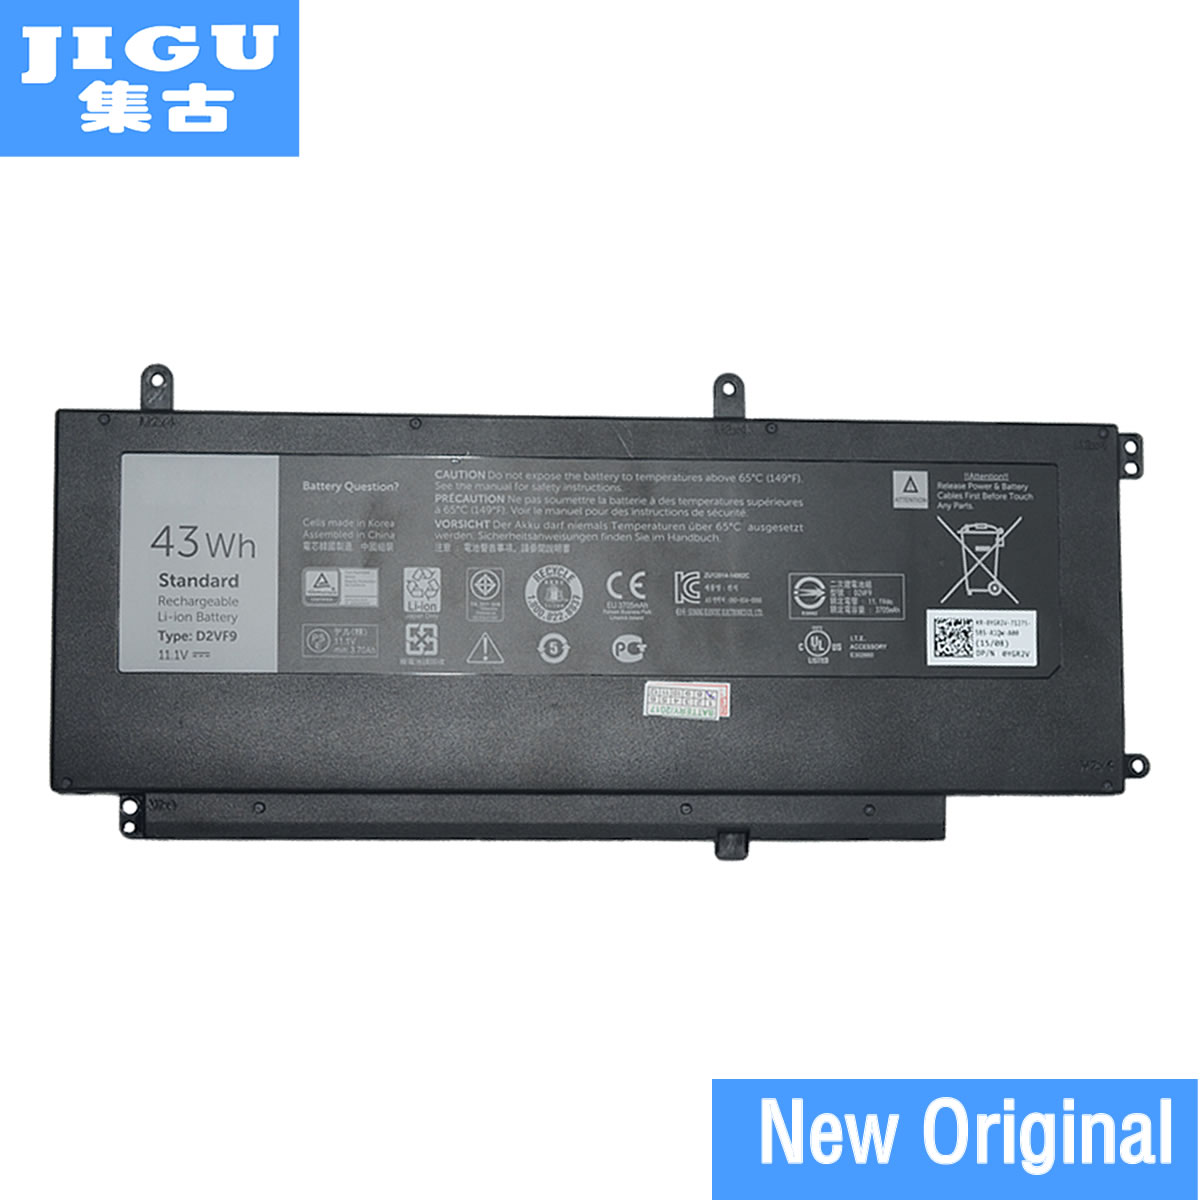 JGIU Original Laptop Battery 0PXR51 0YGR2V D2VF9 PXR51 For DELL For Inspiron 15 7547 7548 For Vostro 14 5000 5459